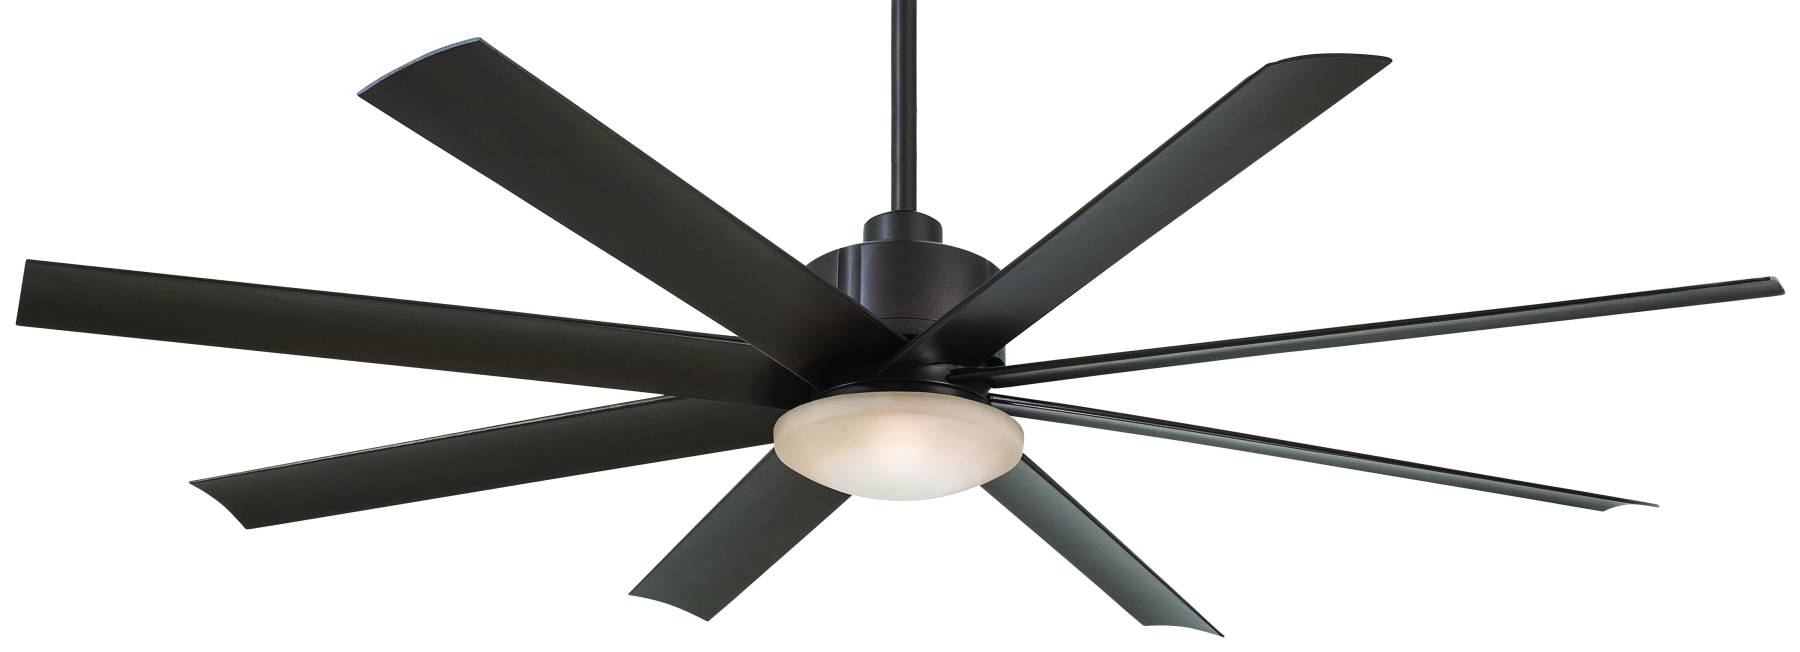 72 Inch Outdoor Ceiling Fans Within Most Recently Released 72 Inch Ceiling Fan With Light Modern Ceiling Design Outdoor Wood (View 11 of 20)